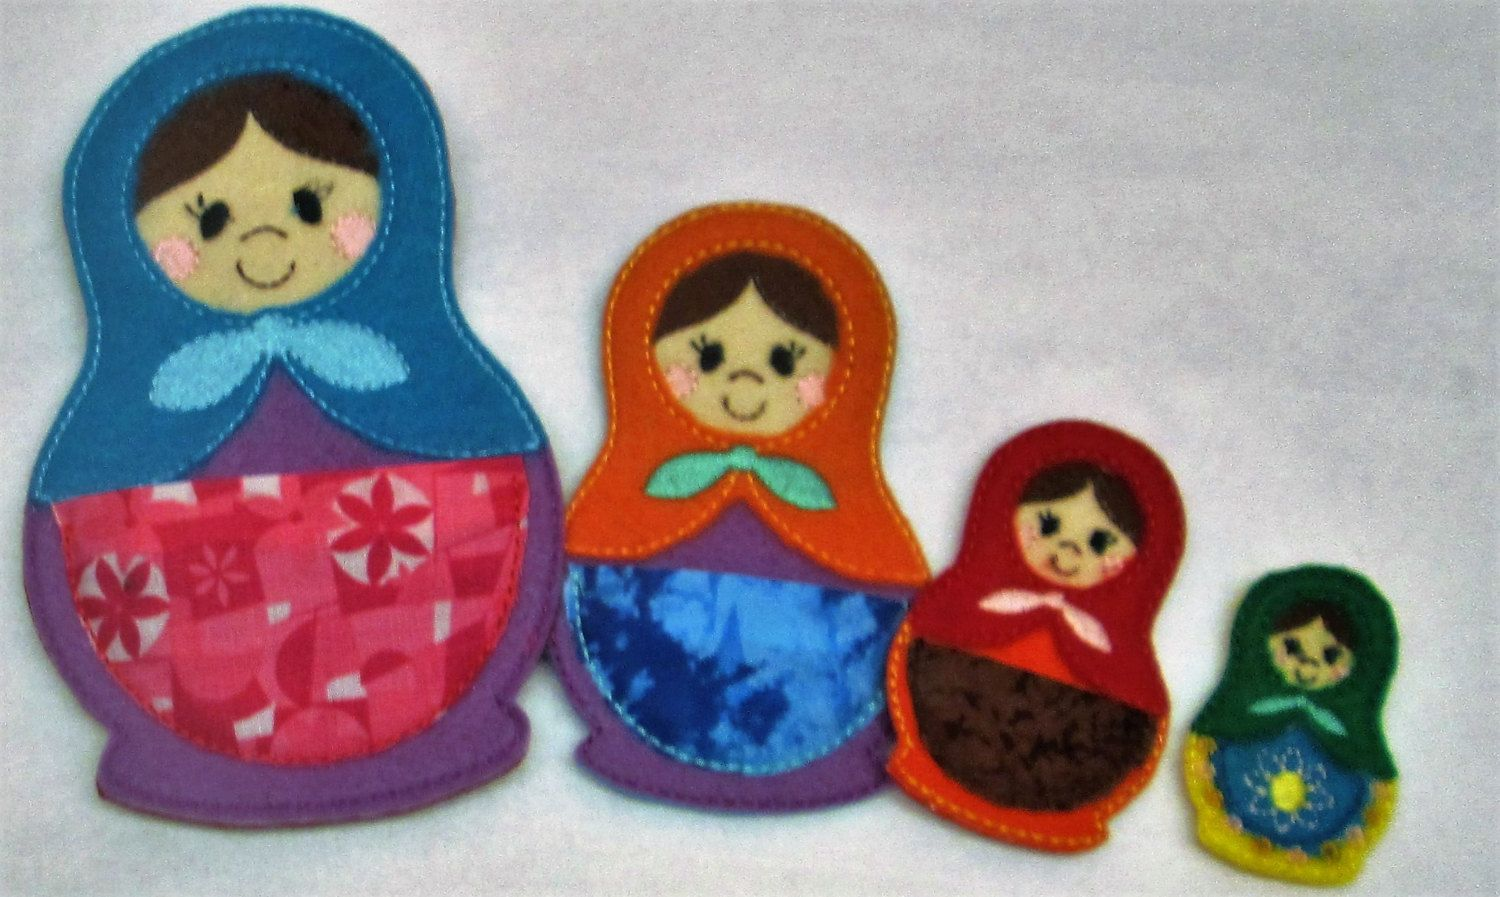 Matryouska Russian Nesting Dolls ... All Ages... Loads of fun!  Ready 2 Ship! Quiet Time!